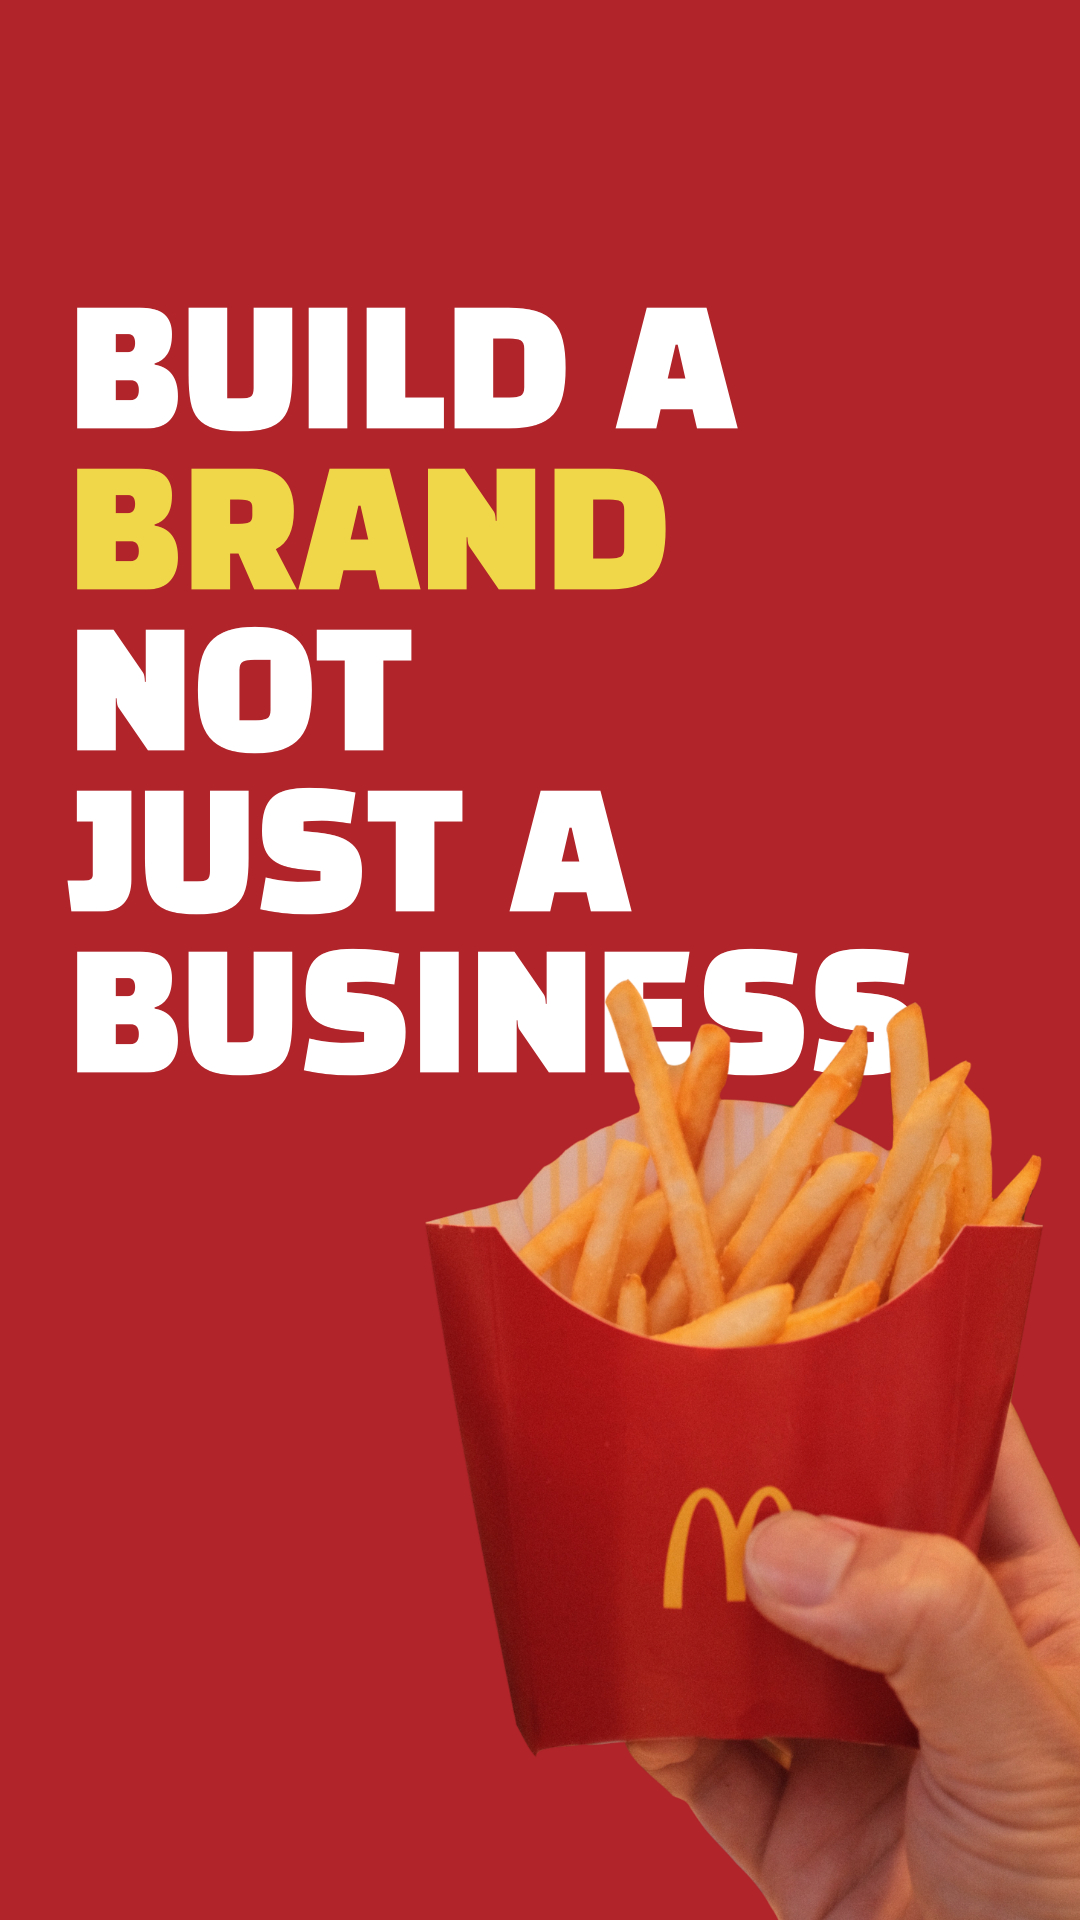 Build a brand not just a business